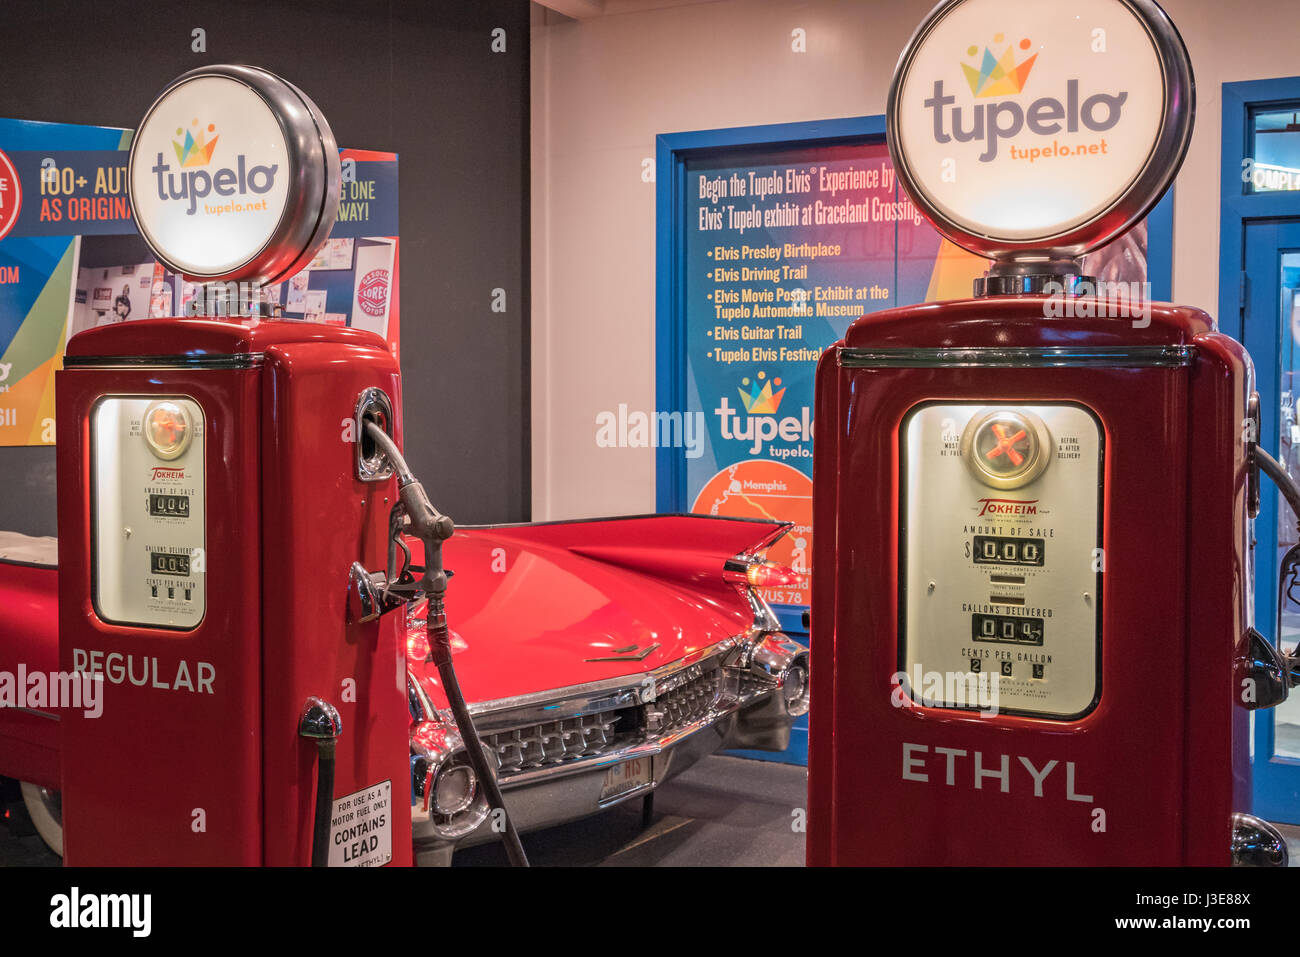 Homage to Tupelo, Mississippi - birthplace of Elvis Presley at the Elvis Presley Car Museum, Graceland, Memphis - Stock Image